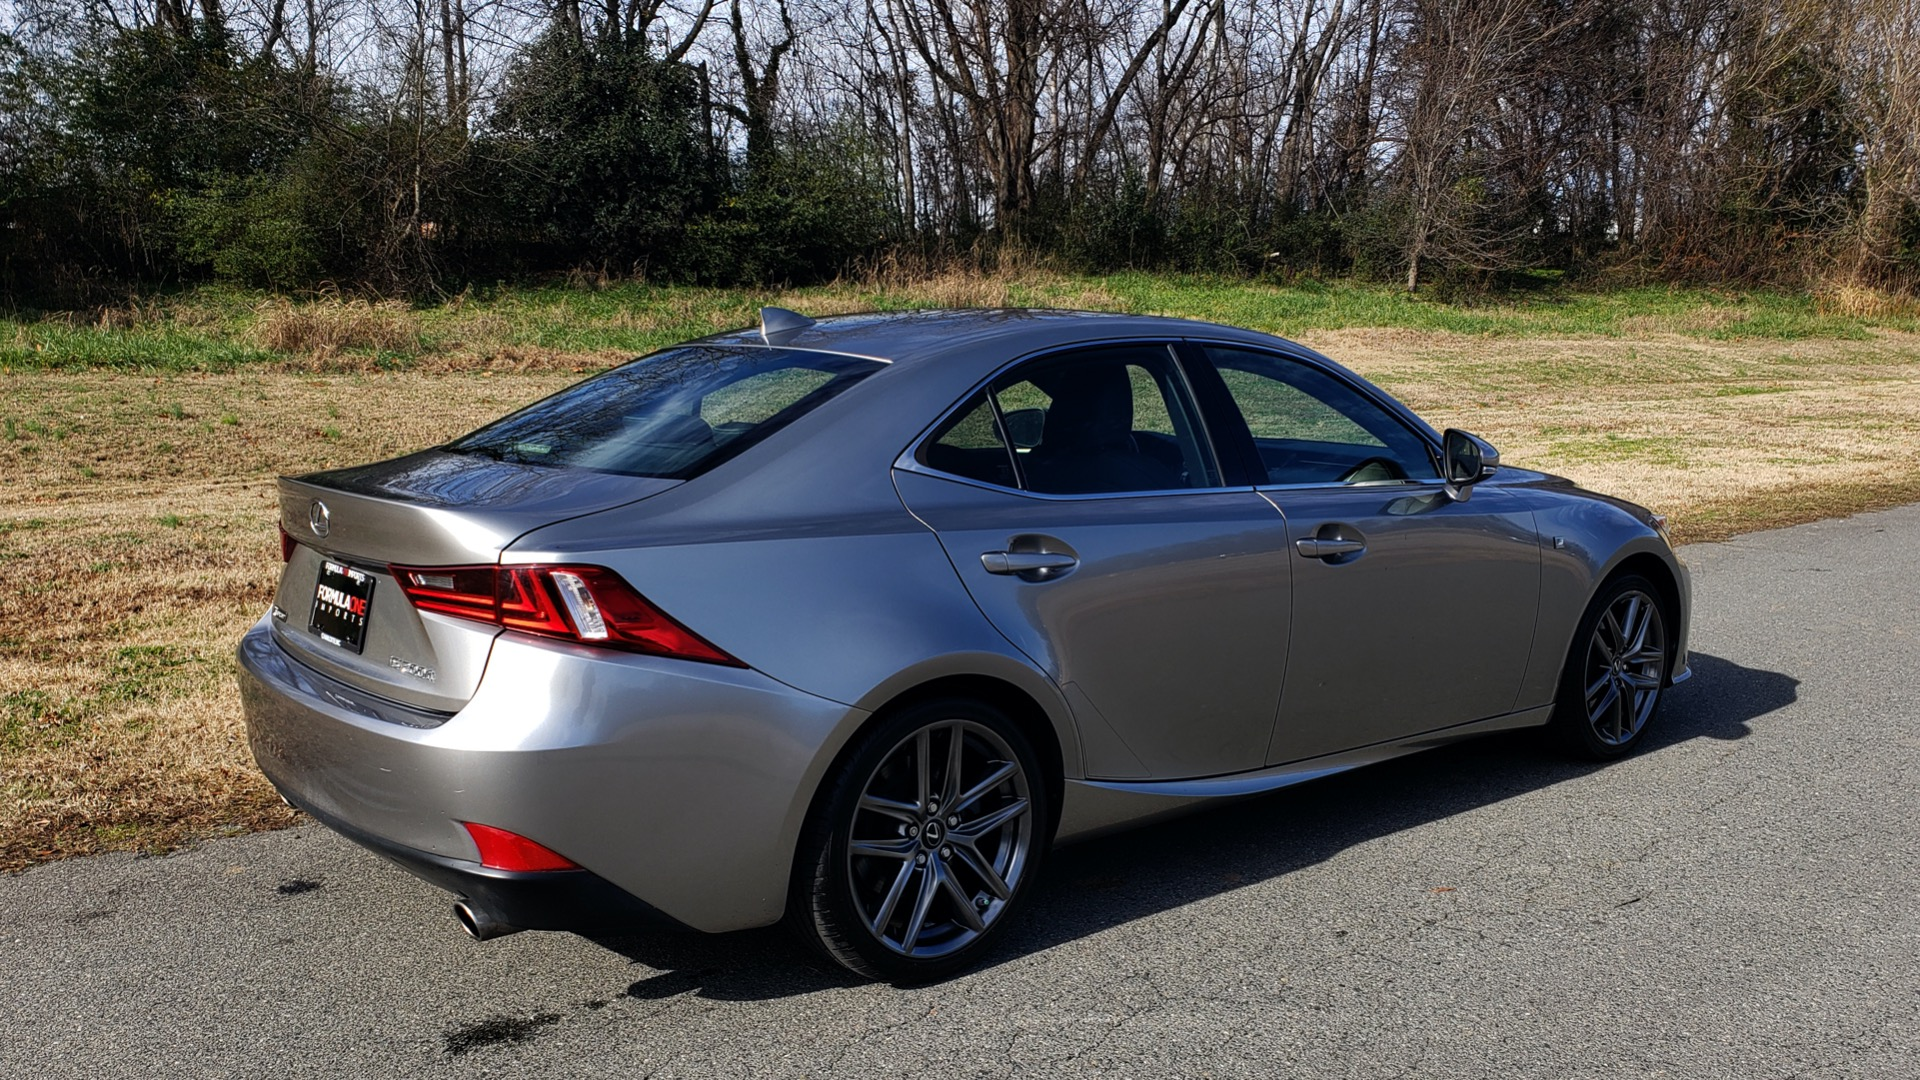 Used 2016 Lexus IS 200t F-SPORT / SUNROOF / NAV / BSM / DYNAMIC RADAR CRUISE for sale Sold at Formula Imports in Charlotte NC 28227 9